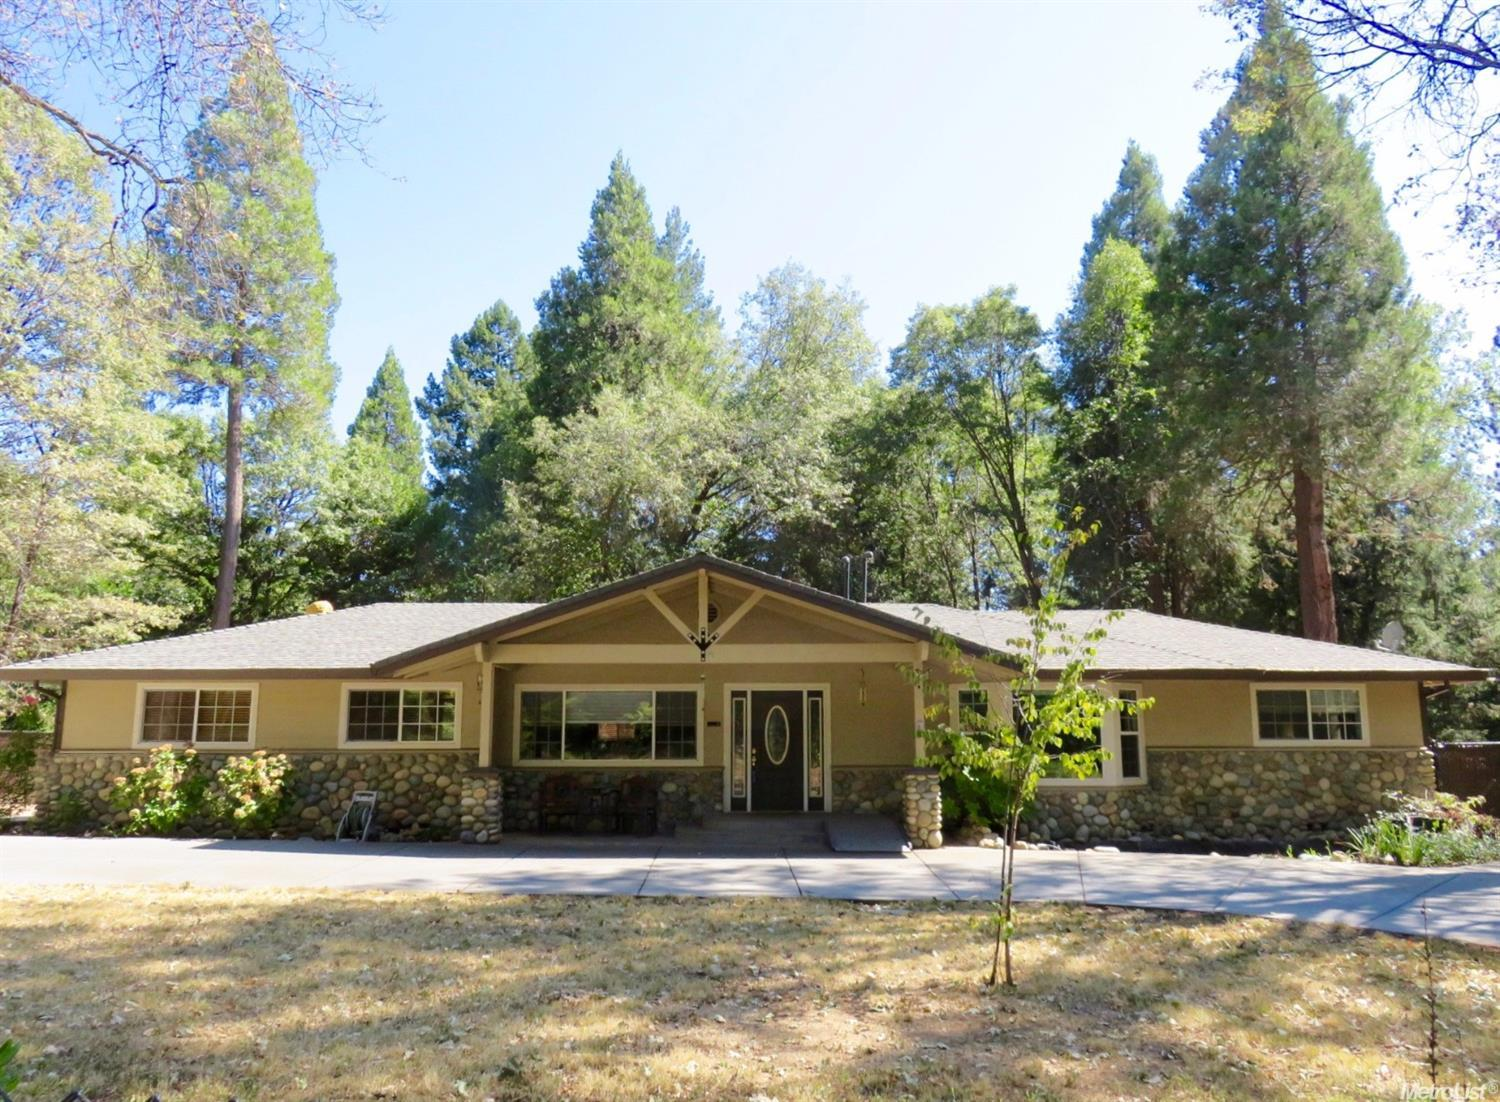 22620 Foresthill Rd, Foresthill, CA 95631